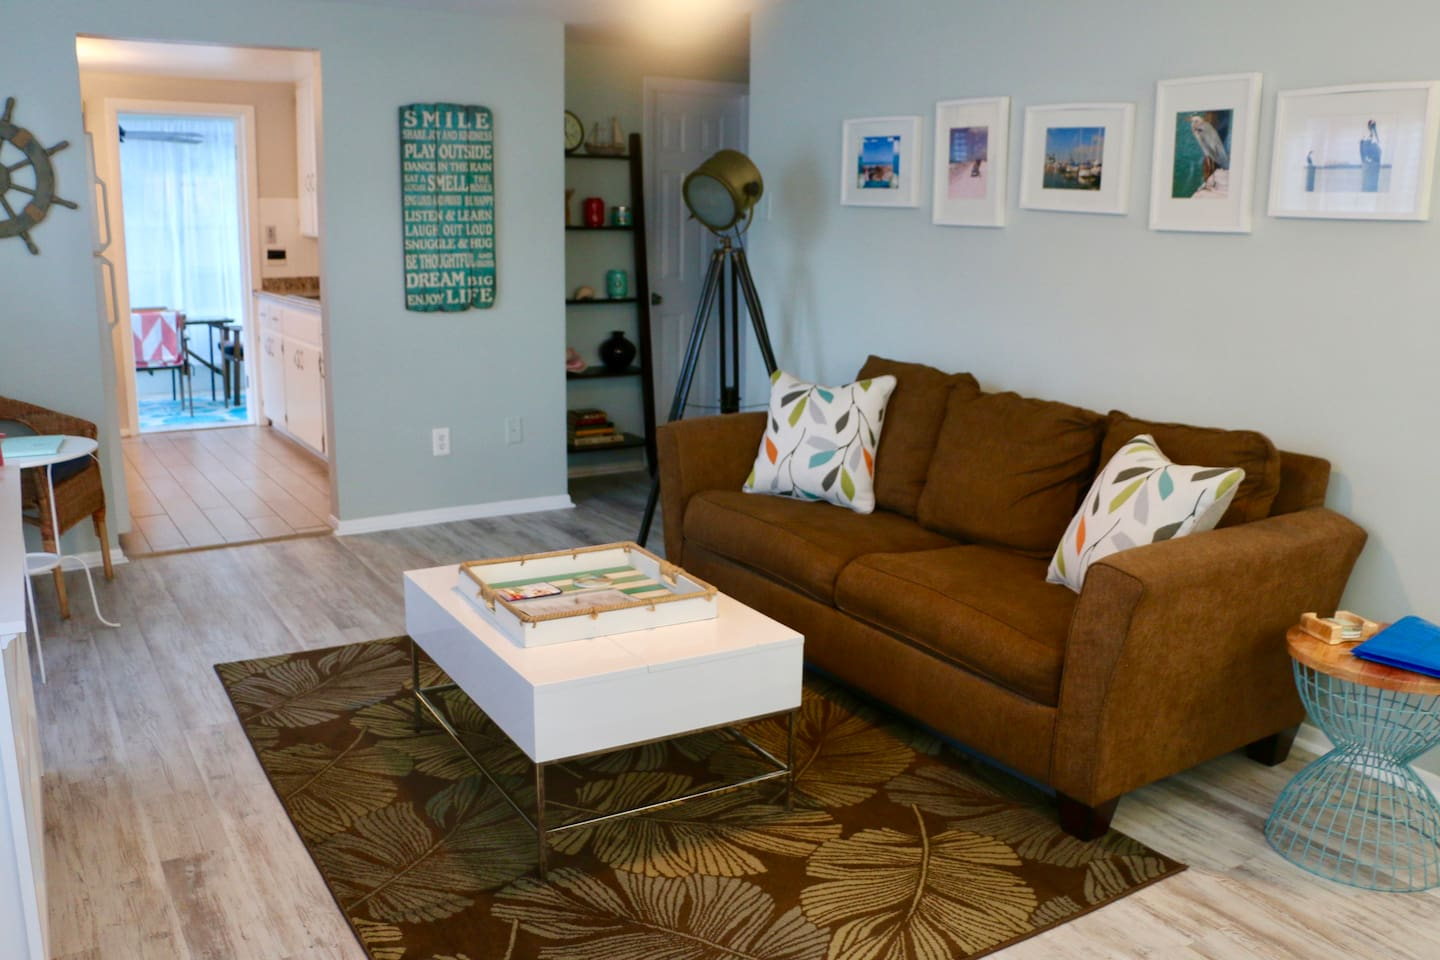 Living area with pull out couch for additional sleep space.